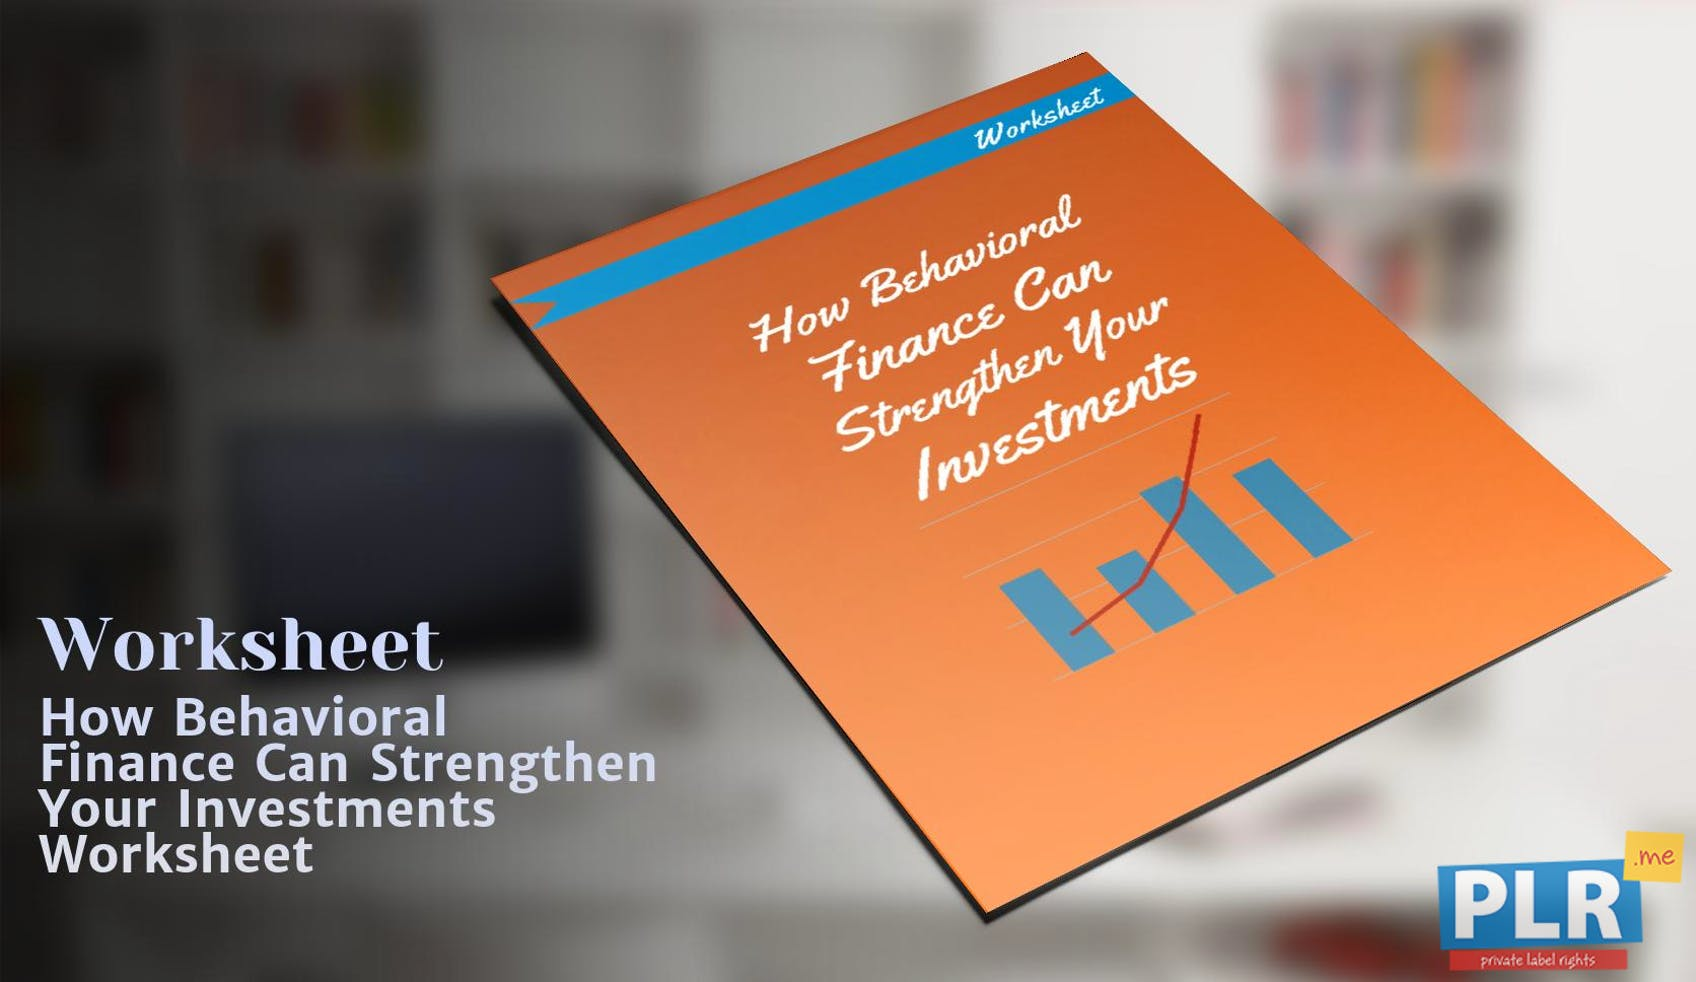 How Behavioral Finance Can Strengthen Your Investments Worksheet